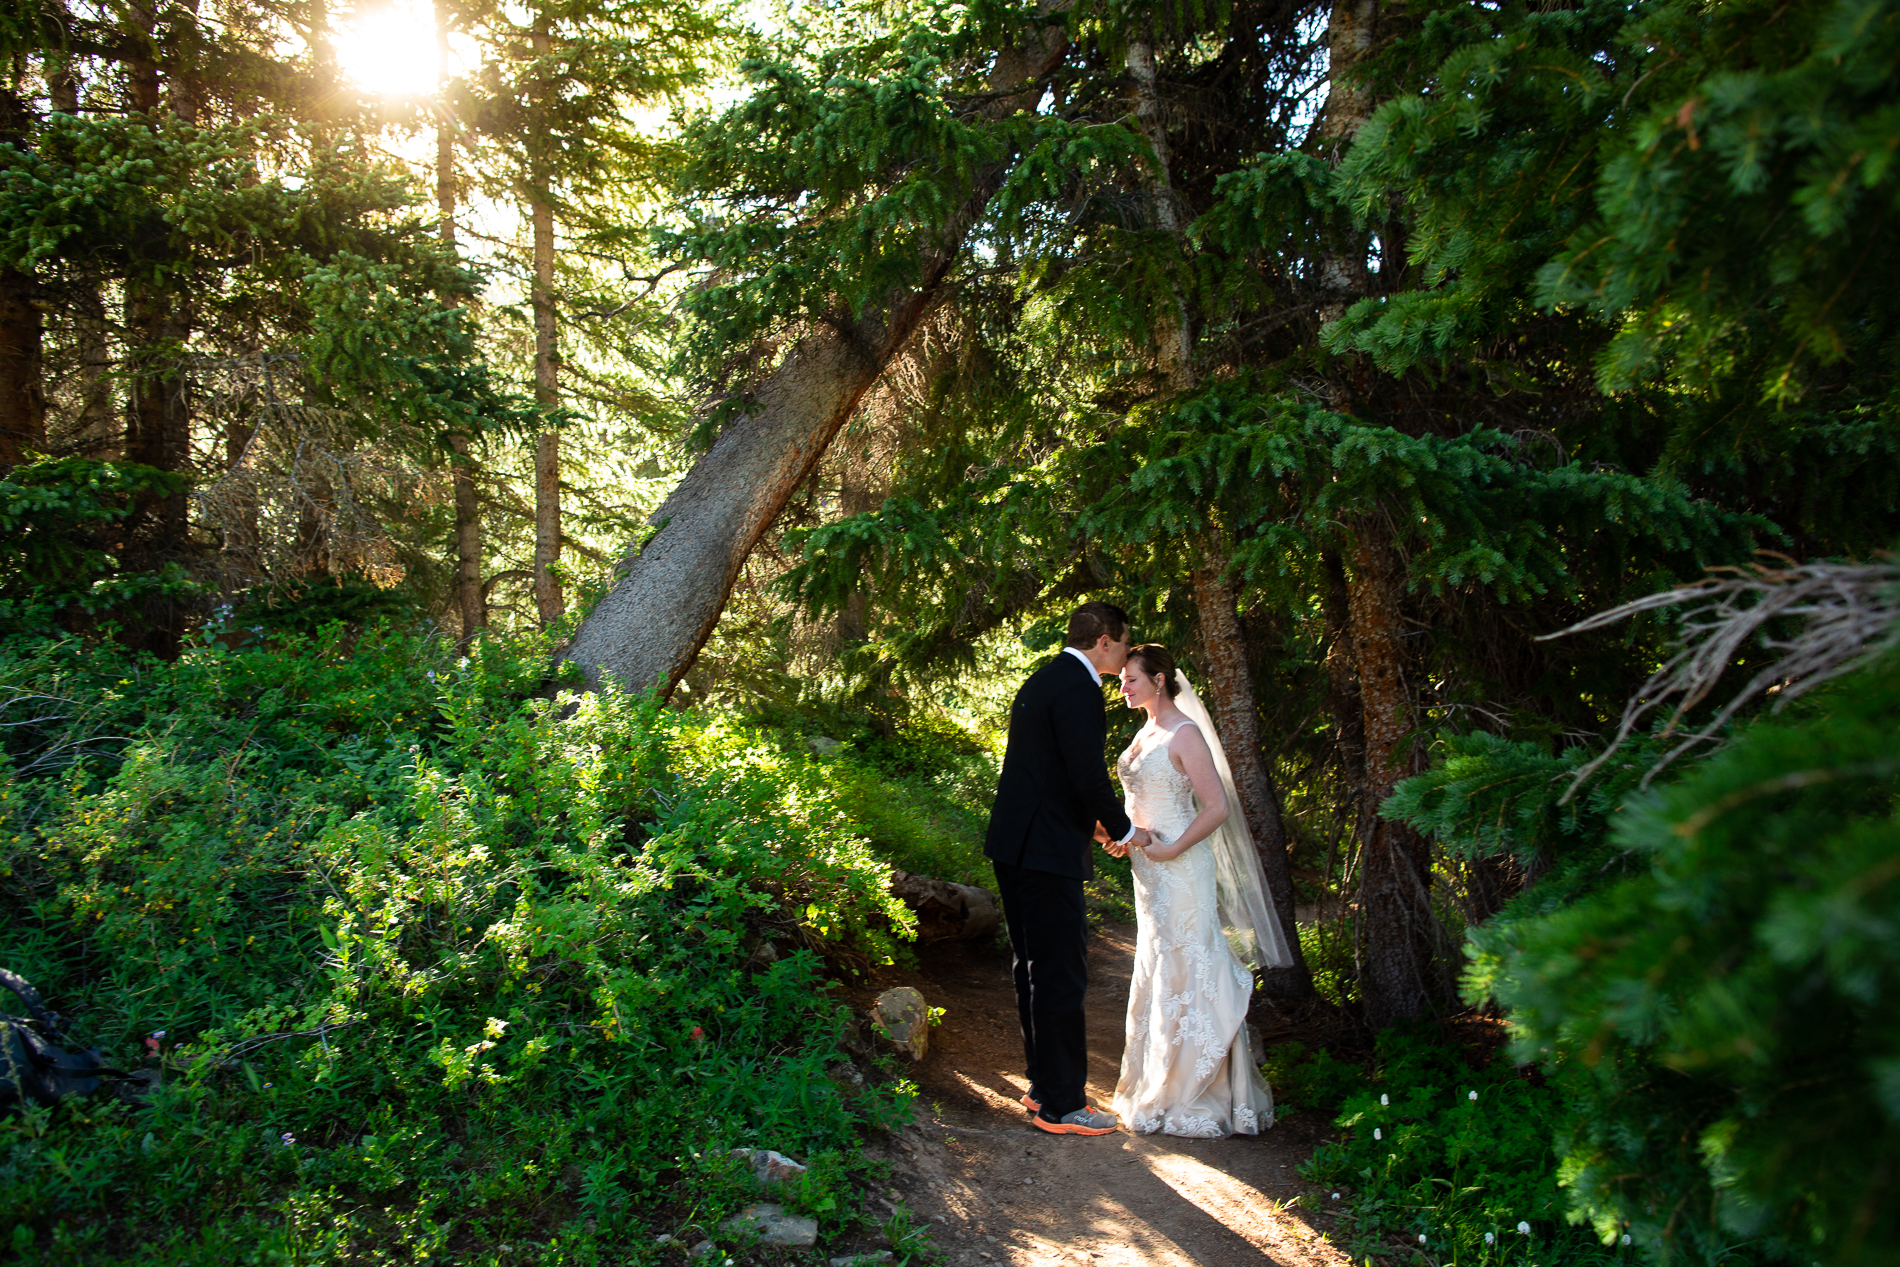 Boreas Pass Colorado Elopement Gallery of Images | the groom paused in the shifting rays of fresh sunlight to kiss his fiance's forehead